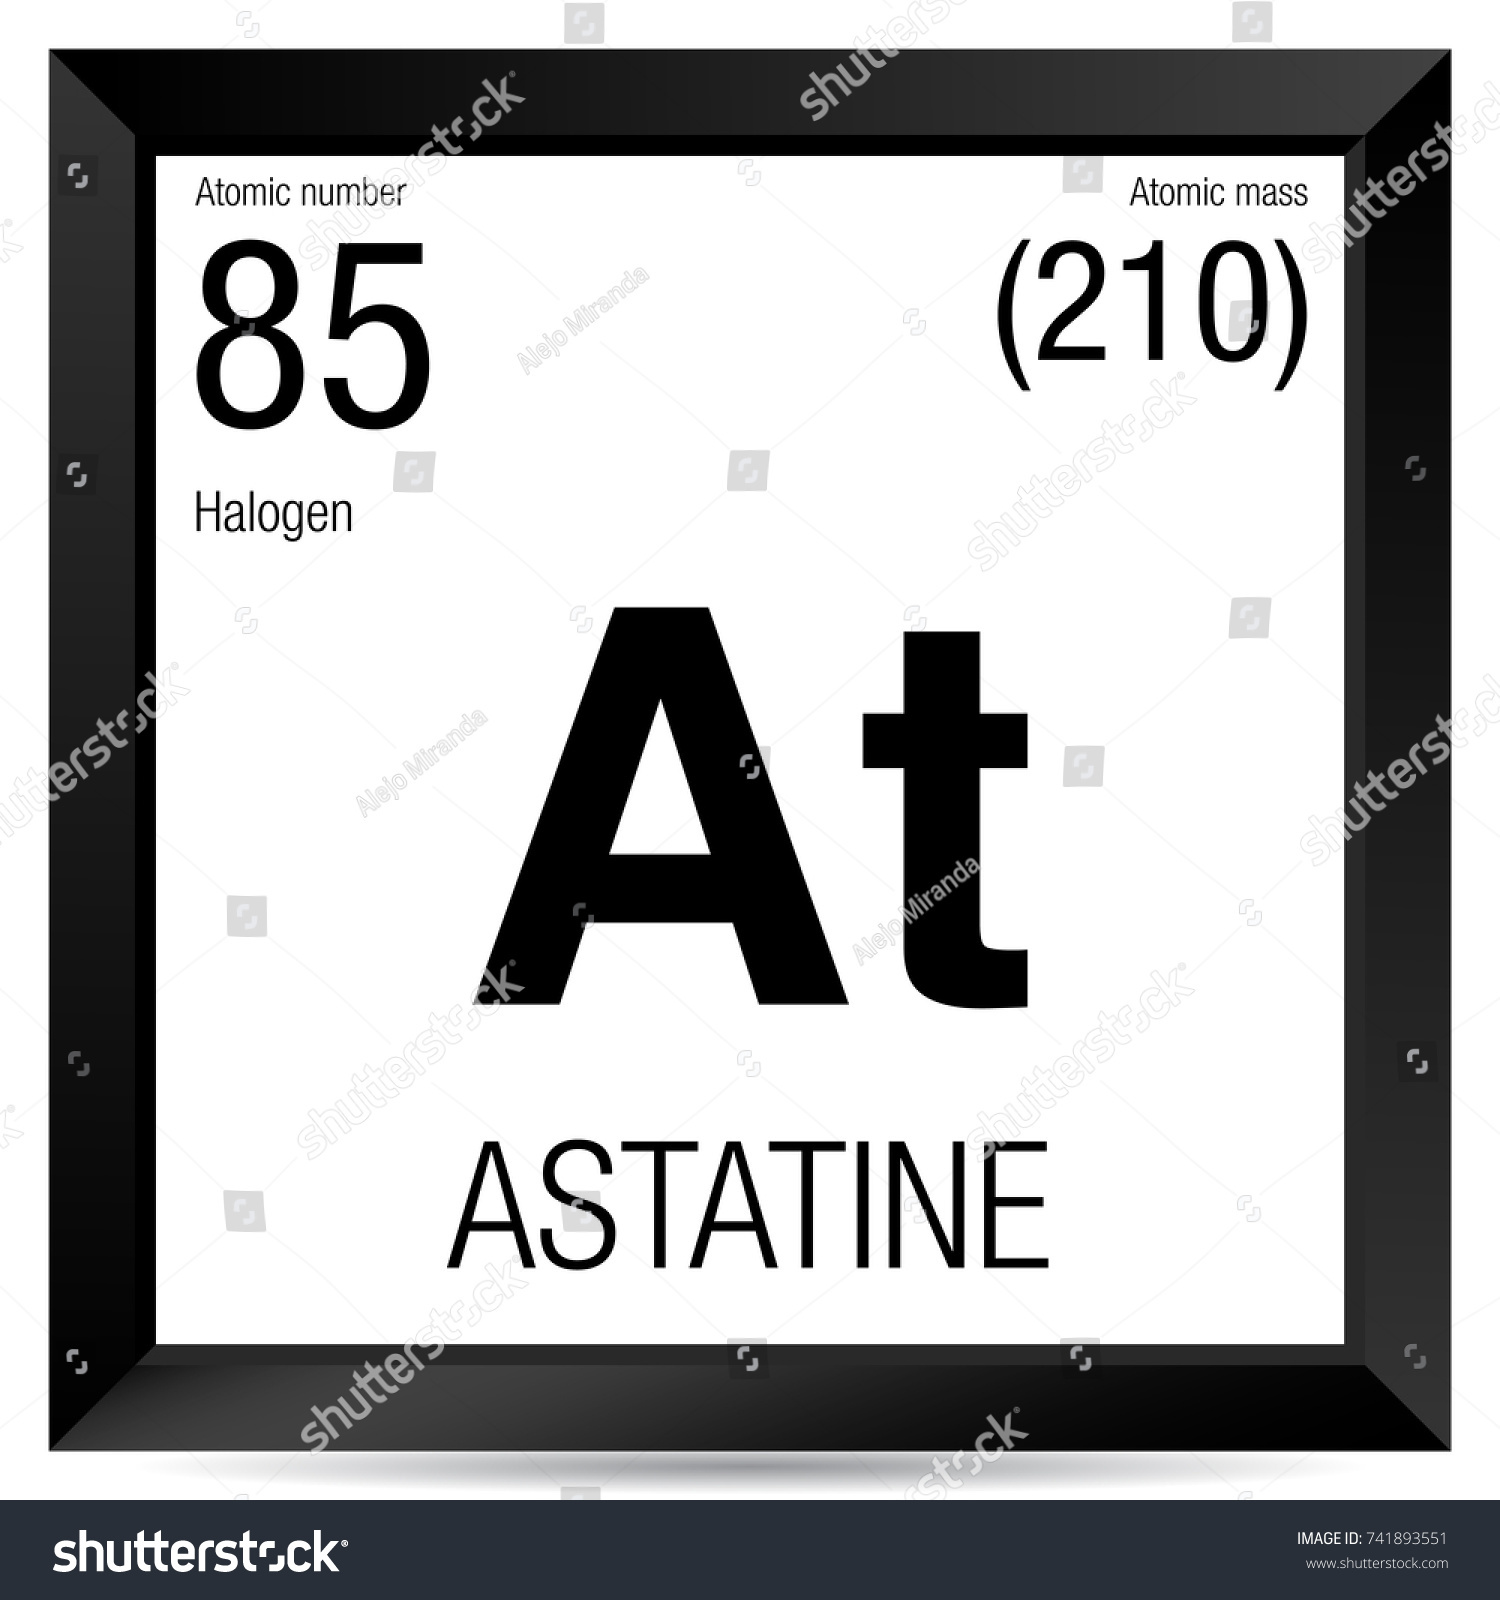 Astatine on the periodic table images periodic table images astatine symbol element number 85 periodic stock vector 741893551 astatine symbol element number 85 of the gamestrikefo Gallery